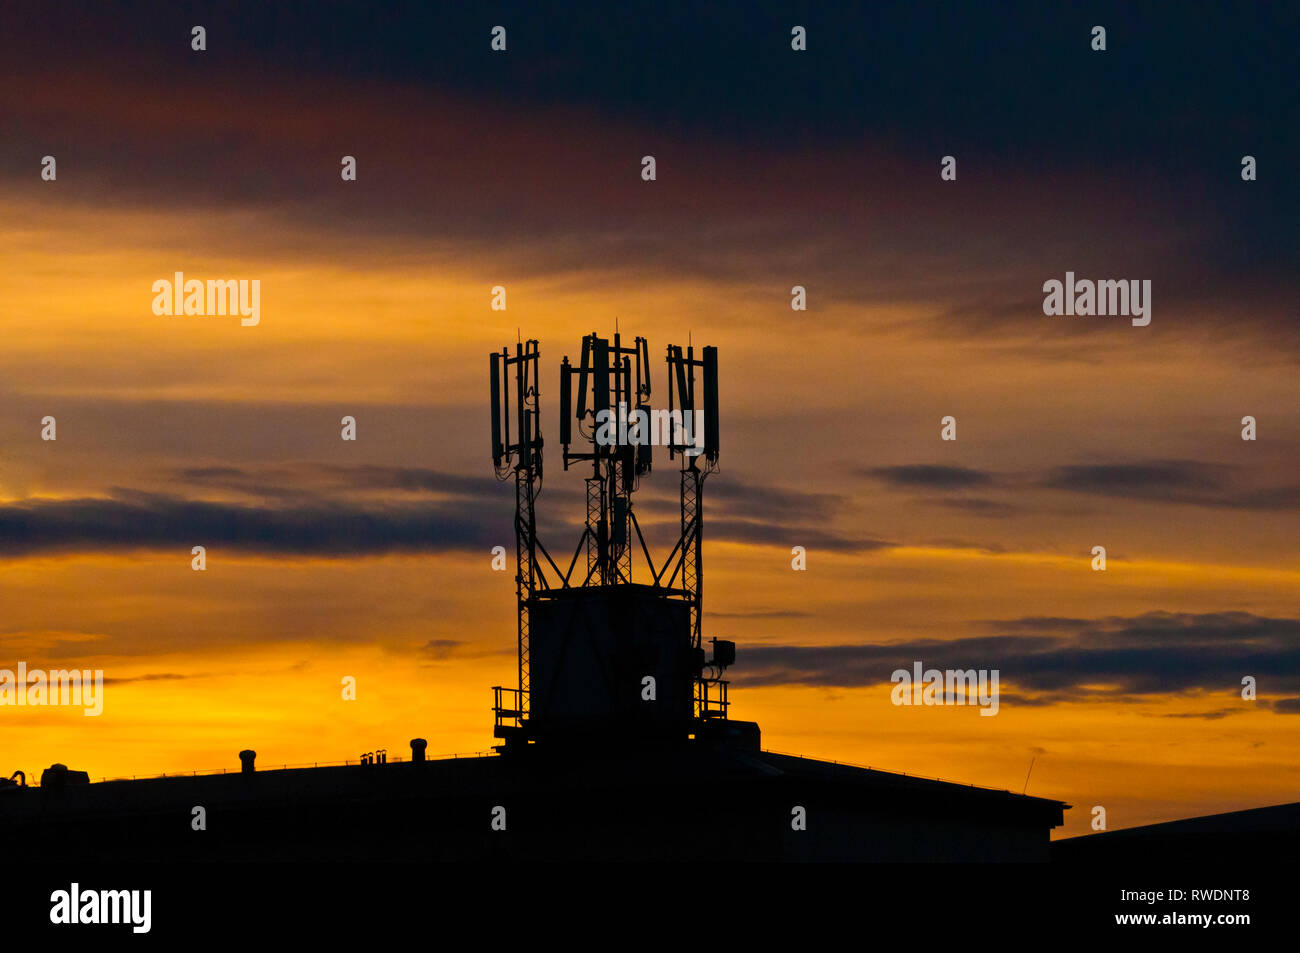 cell site on the roof of a building in silhouette - Stock Image